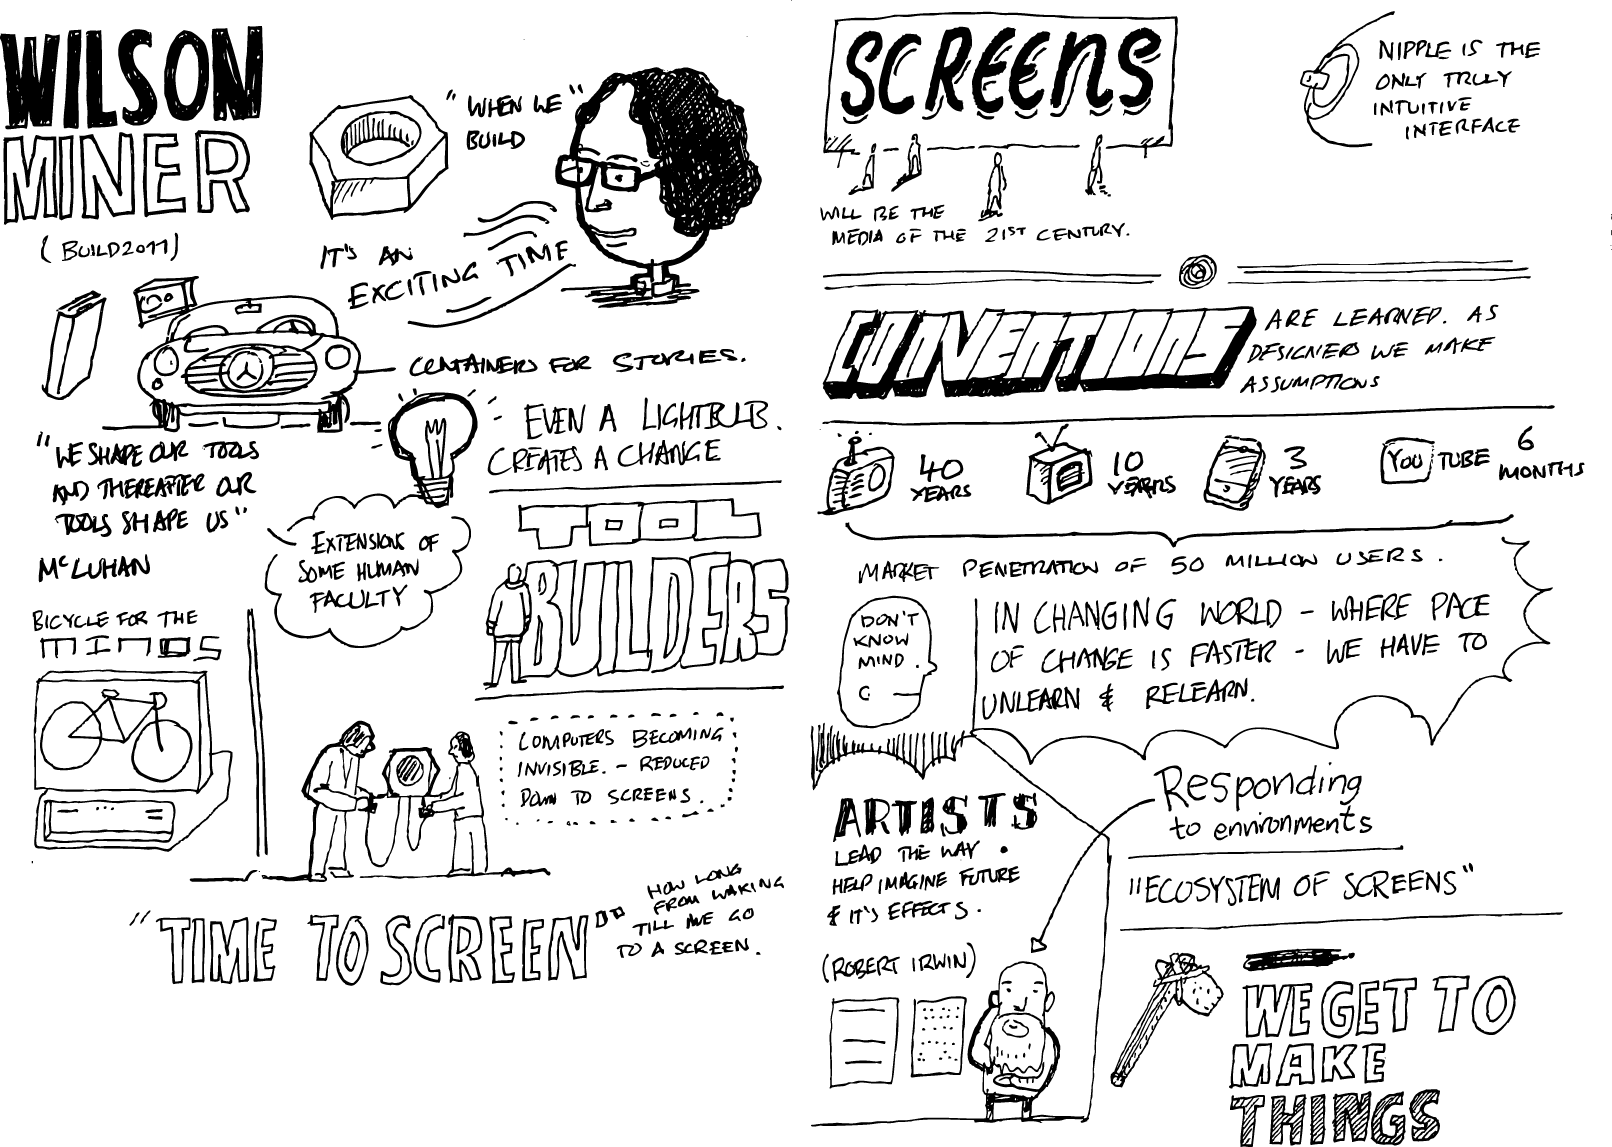 'When we build' sketch notes